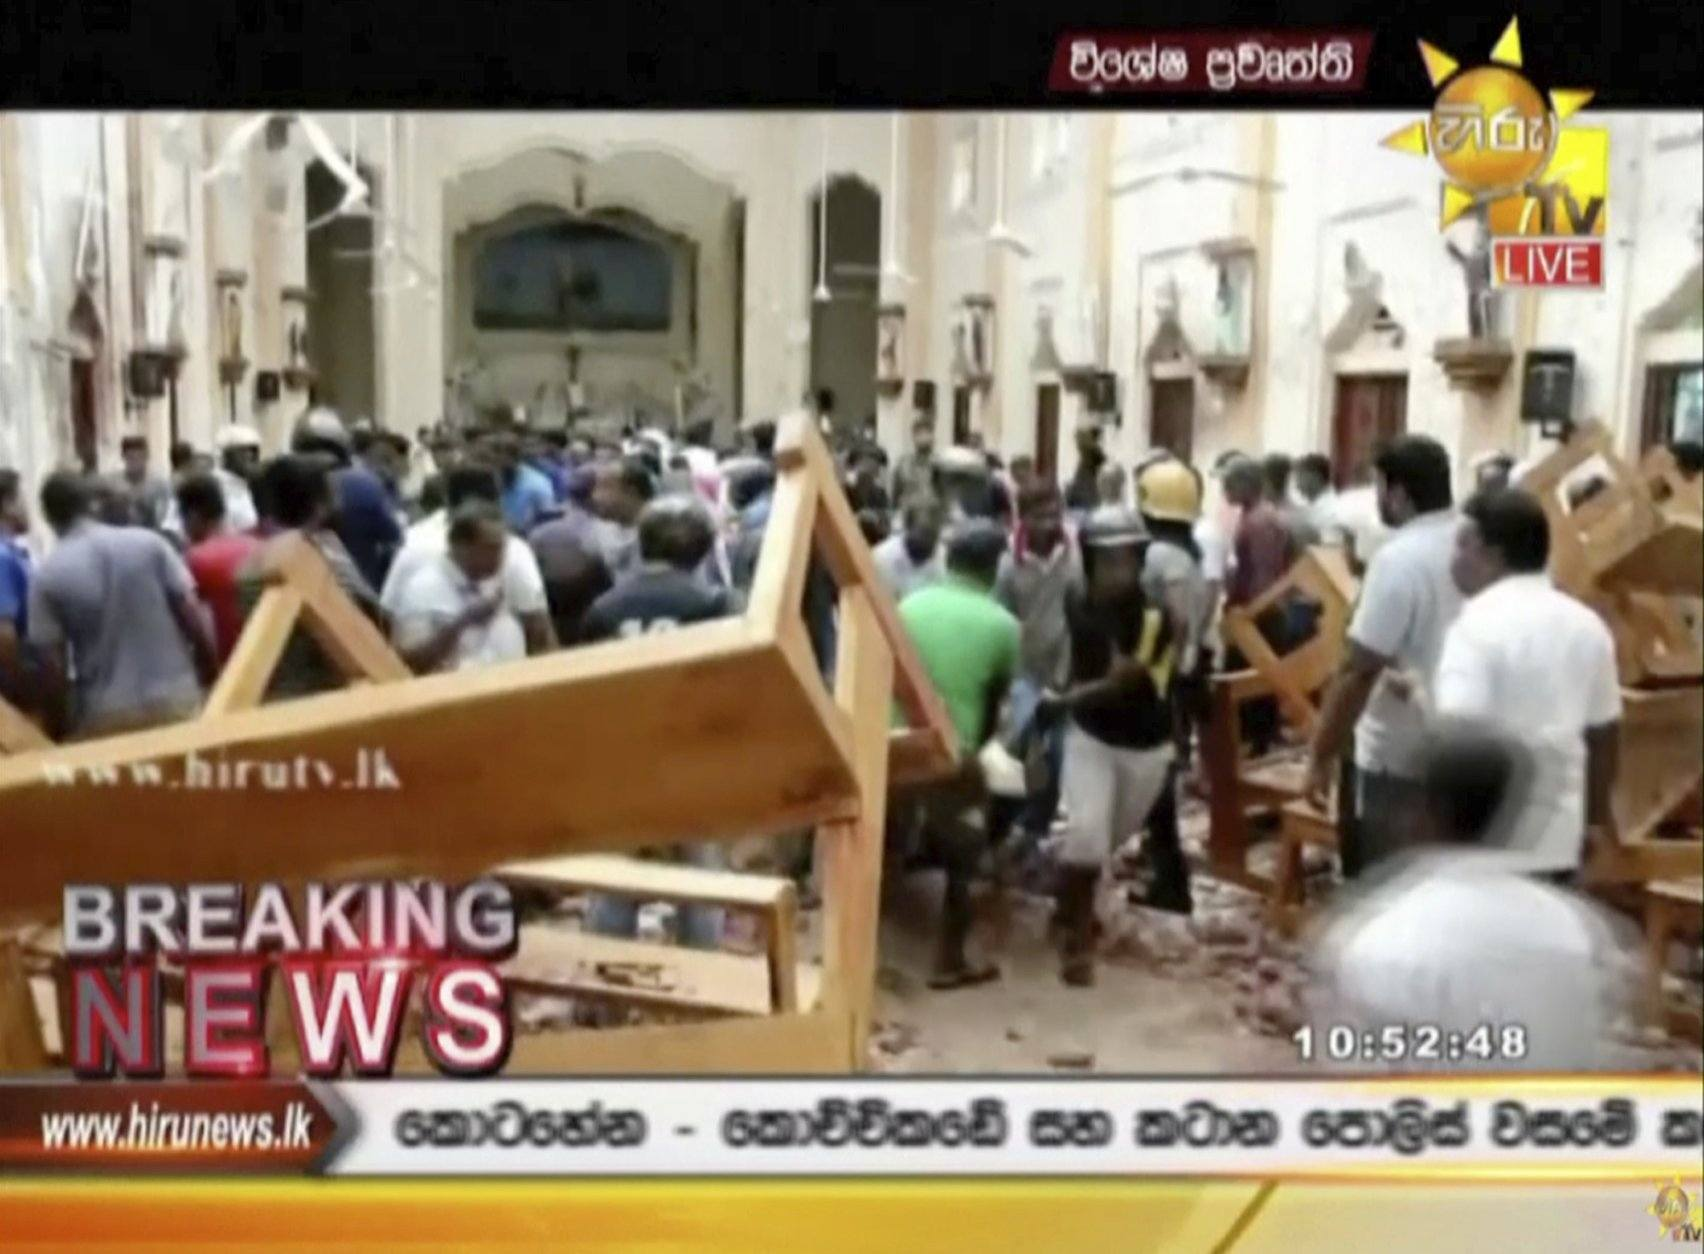 ADDS DETAIL OF THE PLACE - This image made from video provided by Hiru TV shows damage inside St. Anthony's Shrine after a blast in Colombo, Sunday, April 21, 2019. Near simultaneous blasts rocked three churches and three hotels in Sri Lanka on Easter Sunday. (Hiru TV via AP)